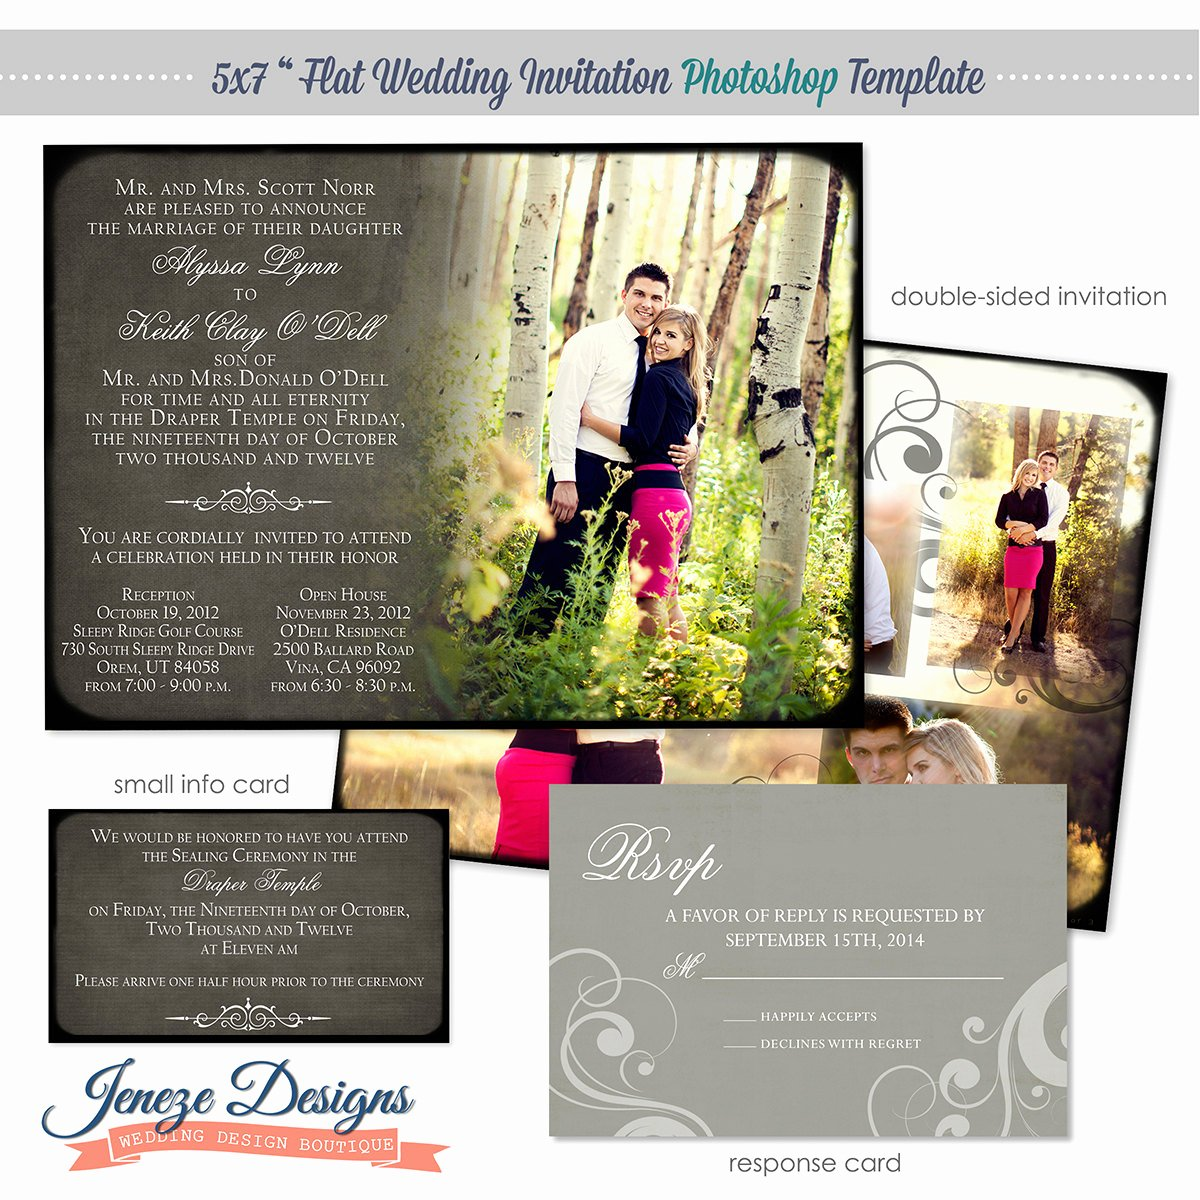 Photoshop Wedding Invitation Template New Wedding Invitation Shop Template for Graphers Item